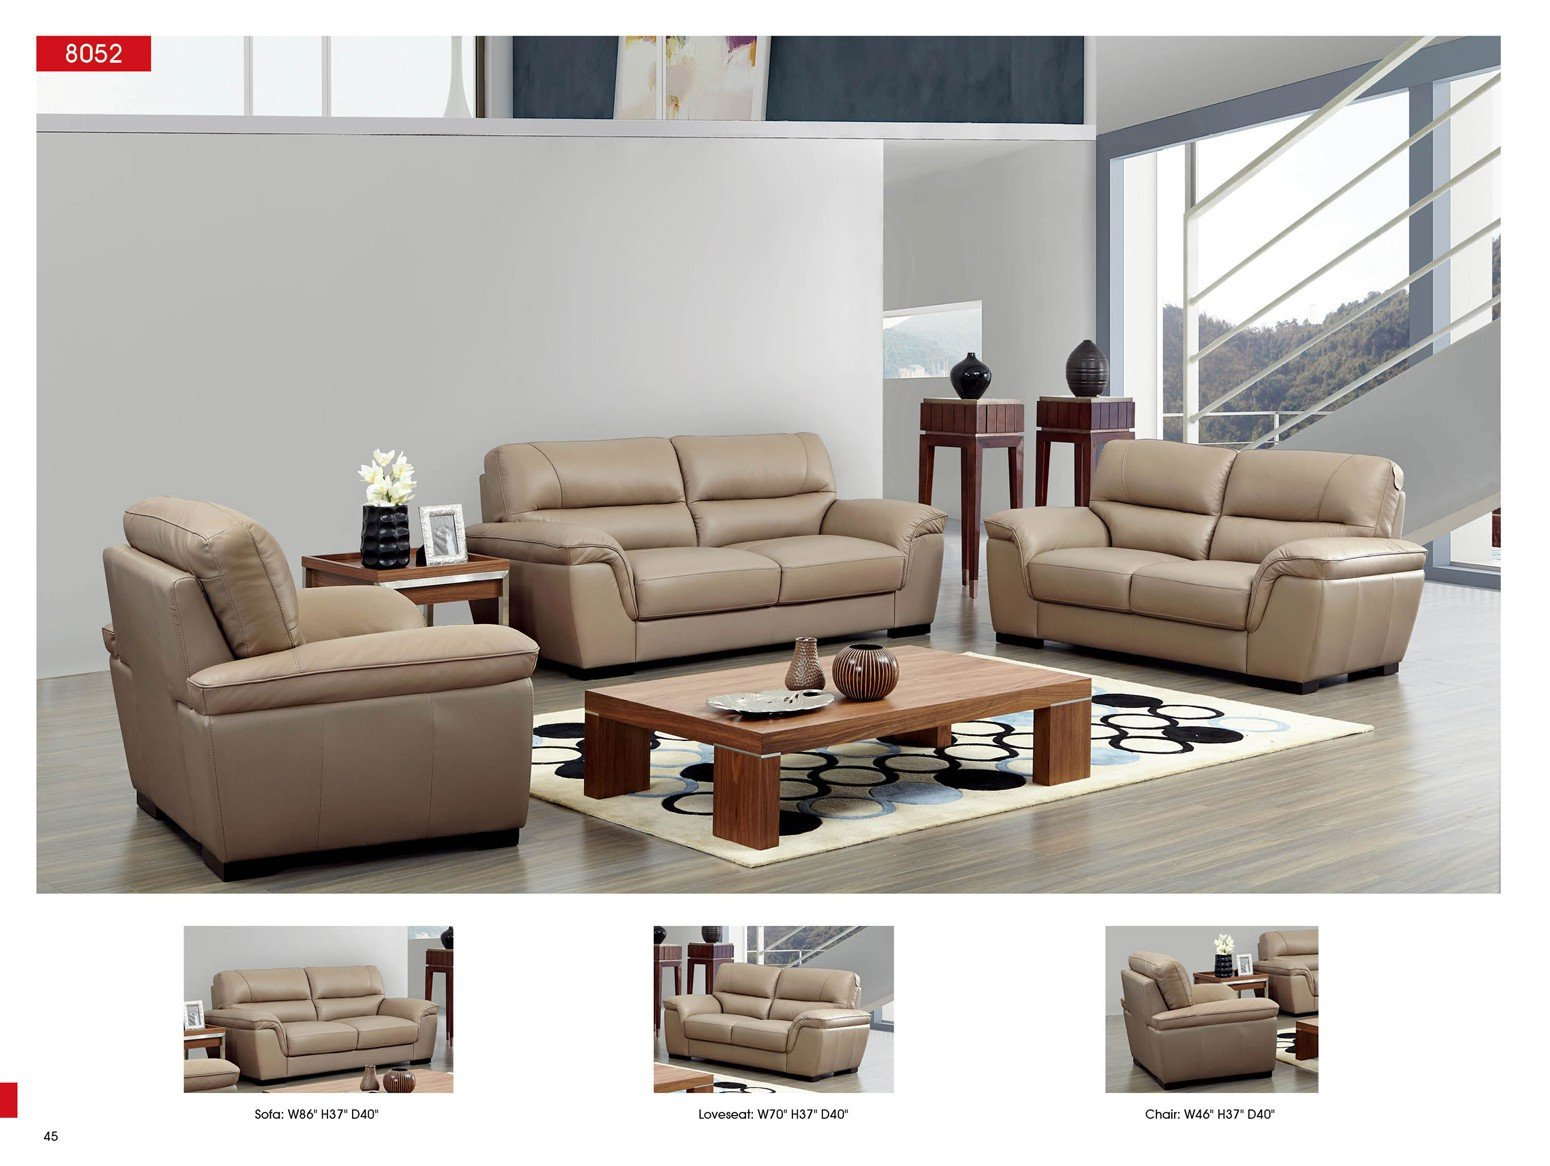 Contemporary Living Room sofas Fresh 8052 Leather sofa Esf Neo Furniture